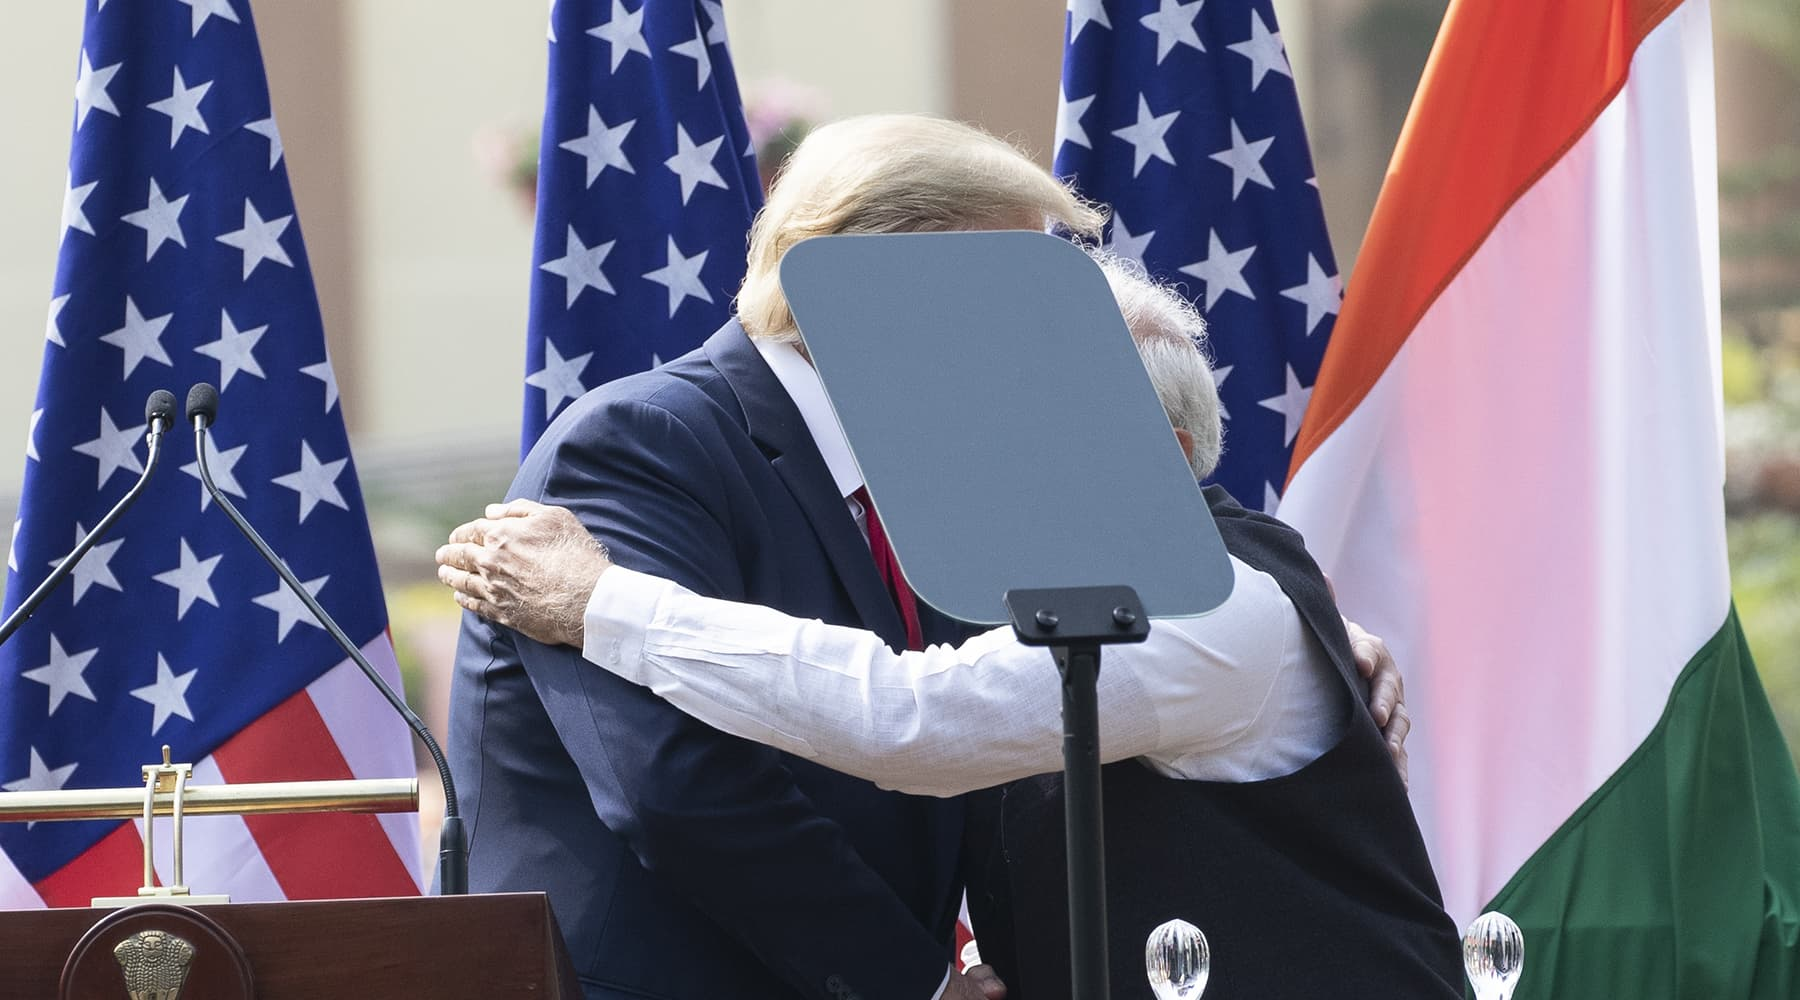 US President Donald Trump and Indian Prime Minister Narendra Modi embrace after a news conference at Hyderabad House on Tuesday, Feb 25, in New Delhi. — AP